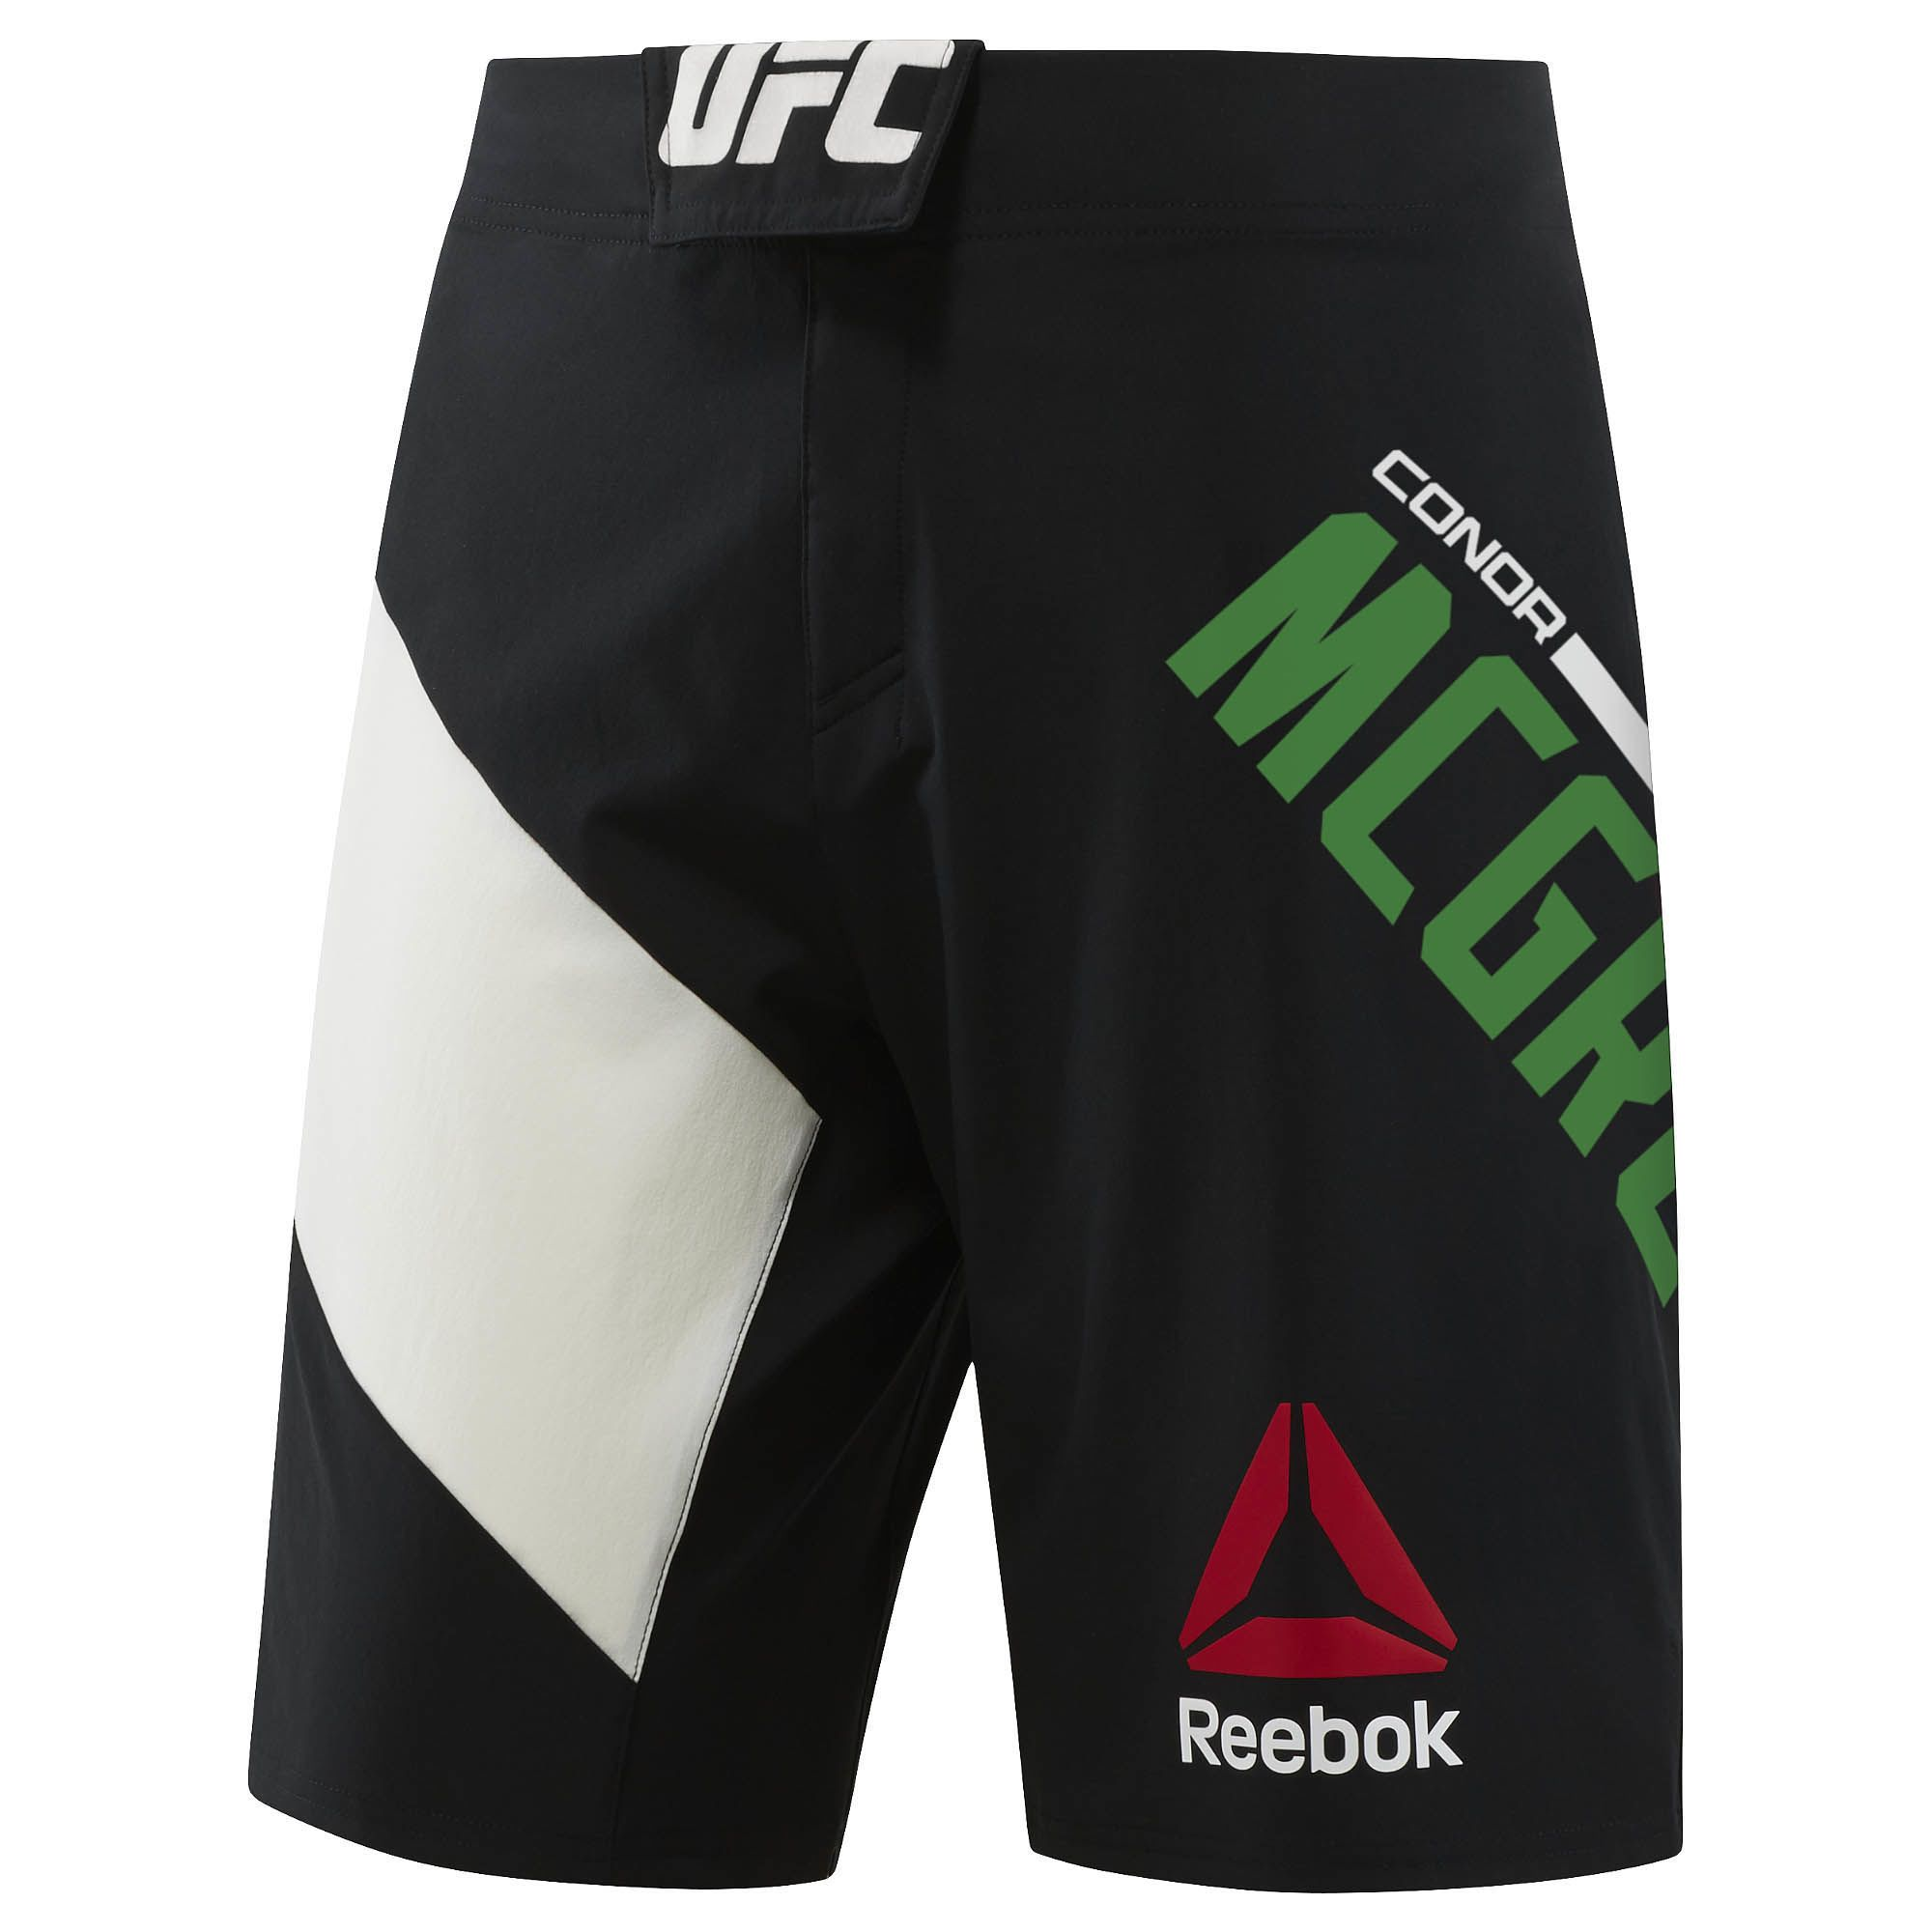 A pair of personalised McGregor Reebok shorts available for purchase.